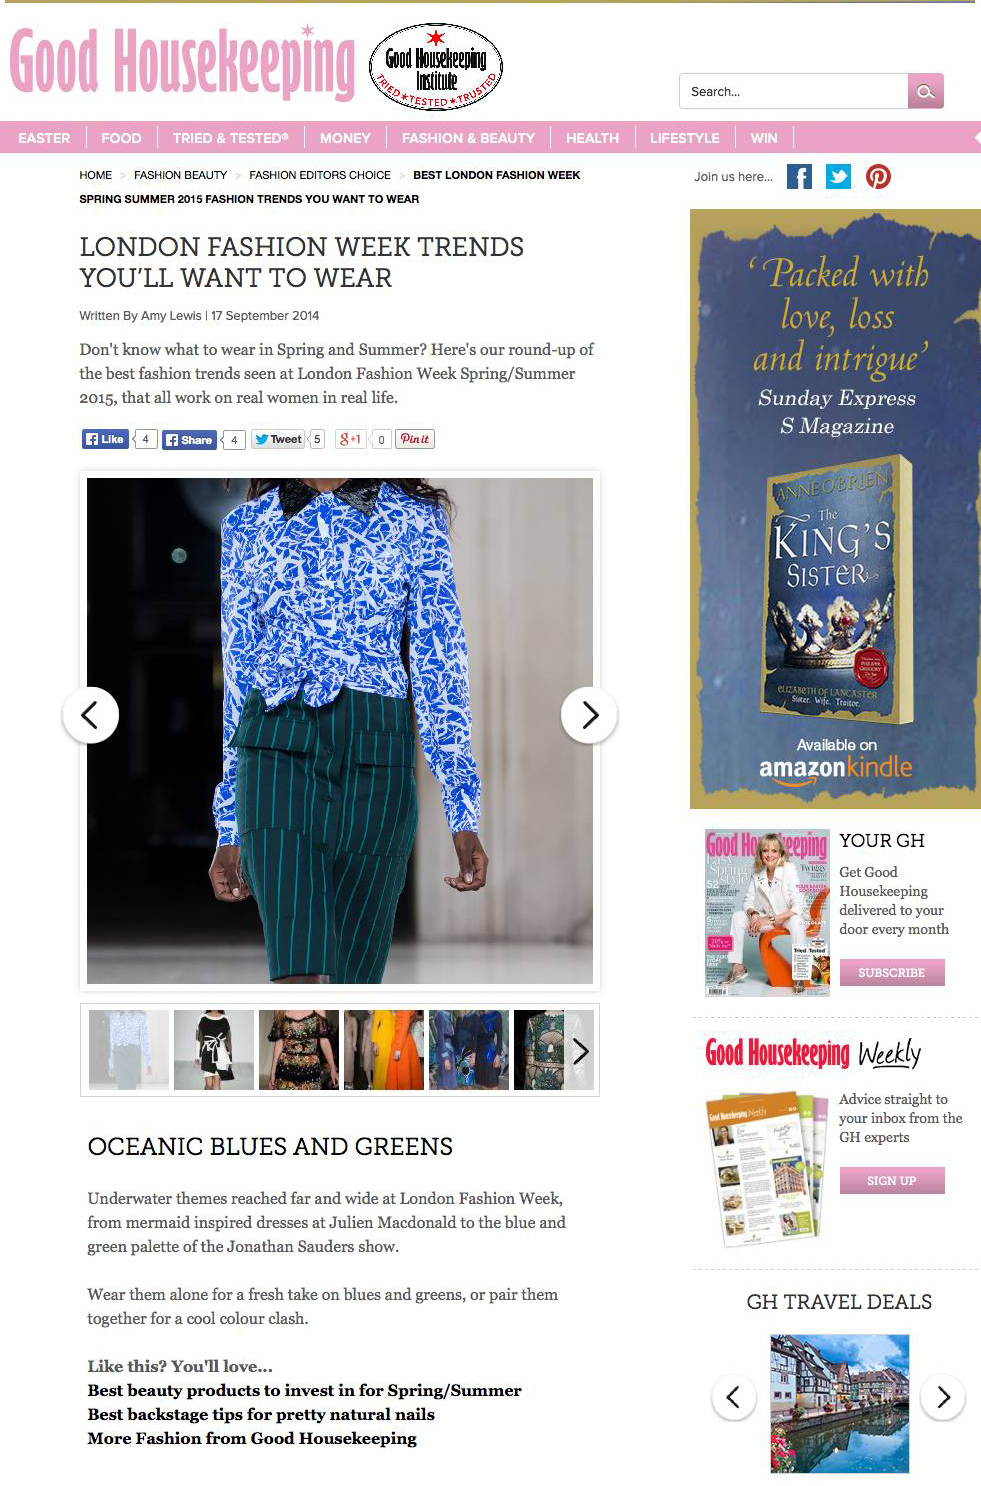 London_Fashion_Week_trends_you_ll_want_to_wear_-_Fashion_Tips_-_Good_Housekeeping_-_2015-03-17_22.12.26.png